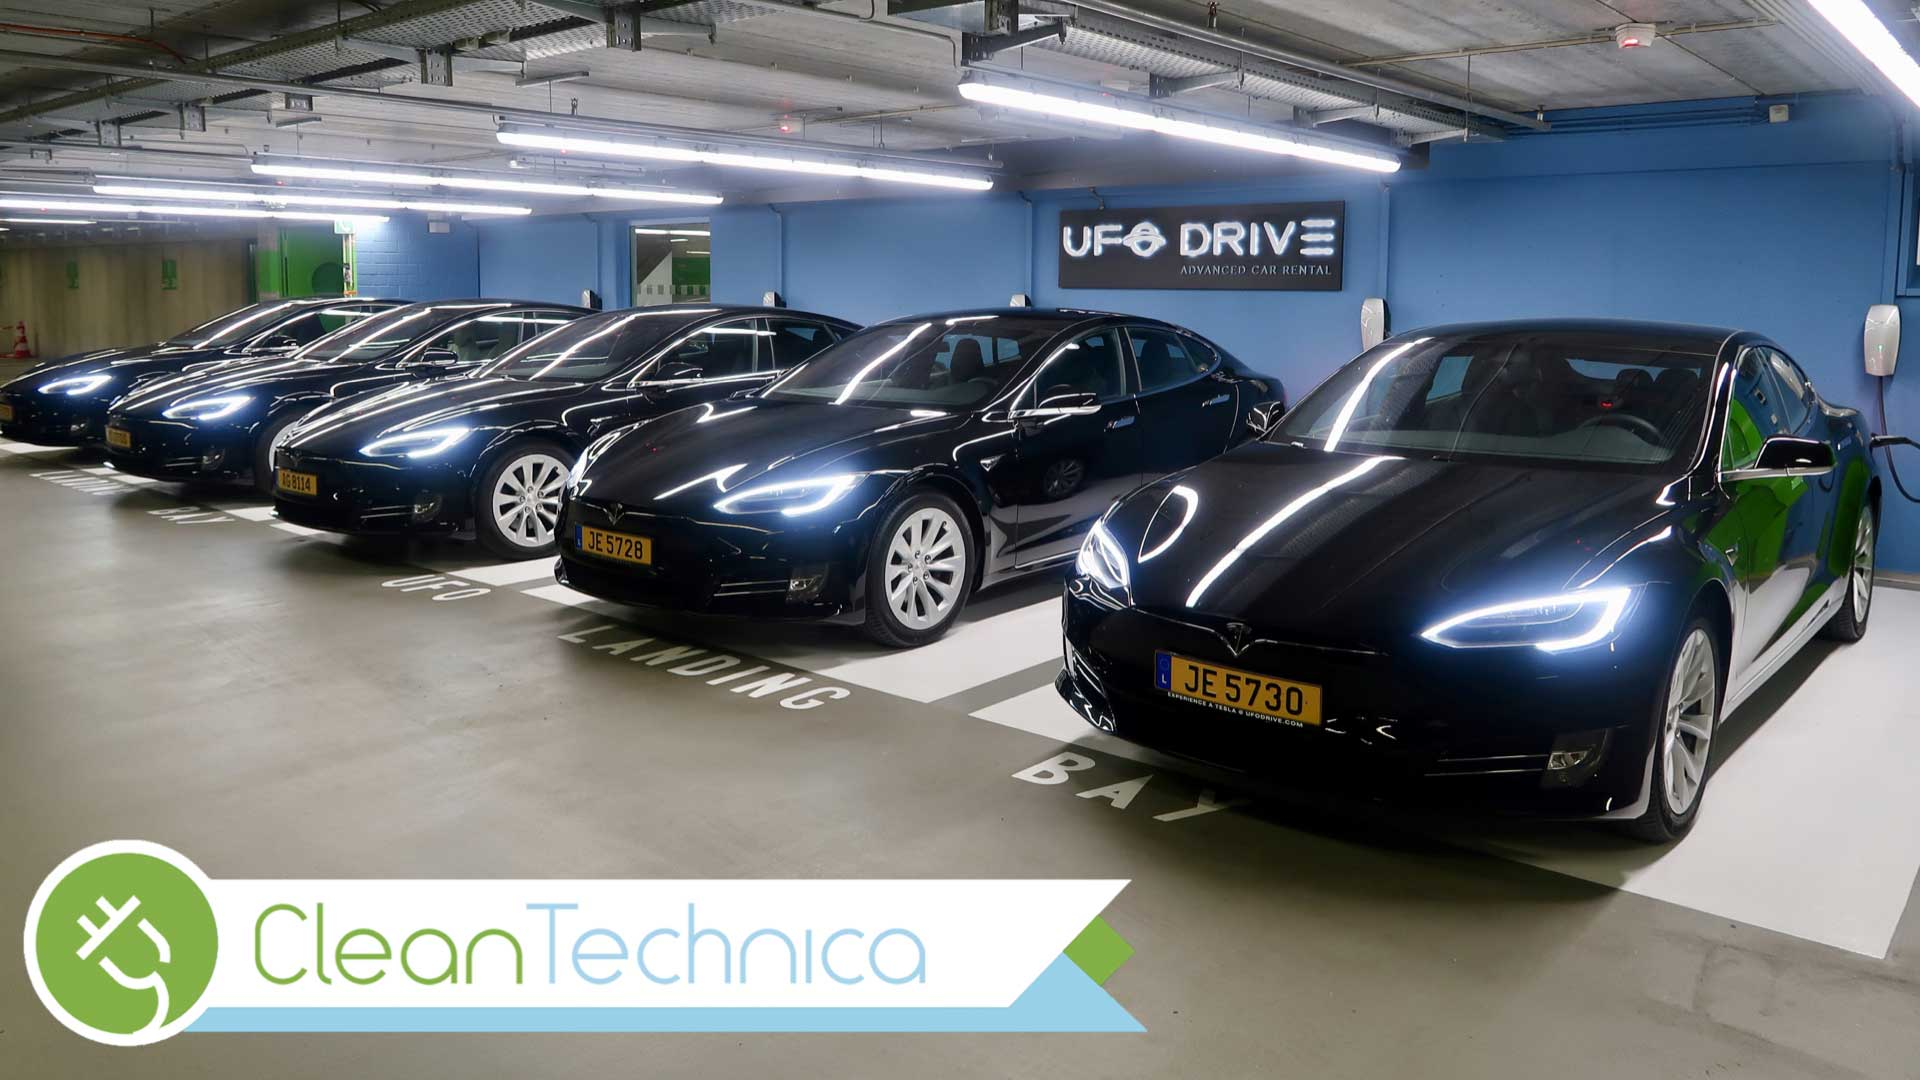 UFODRIVE Aims To Dominate The Globe With EV Rentals